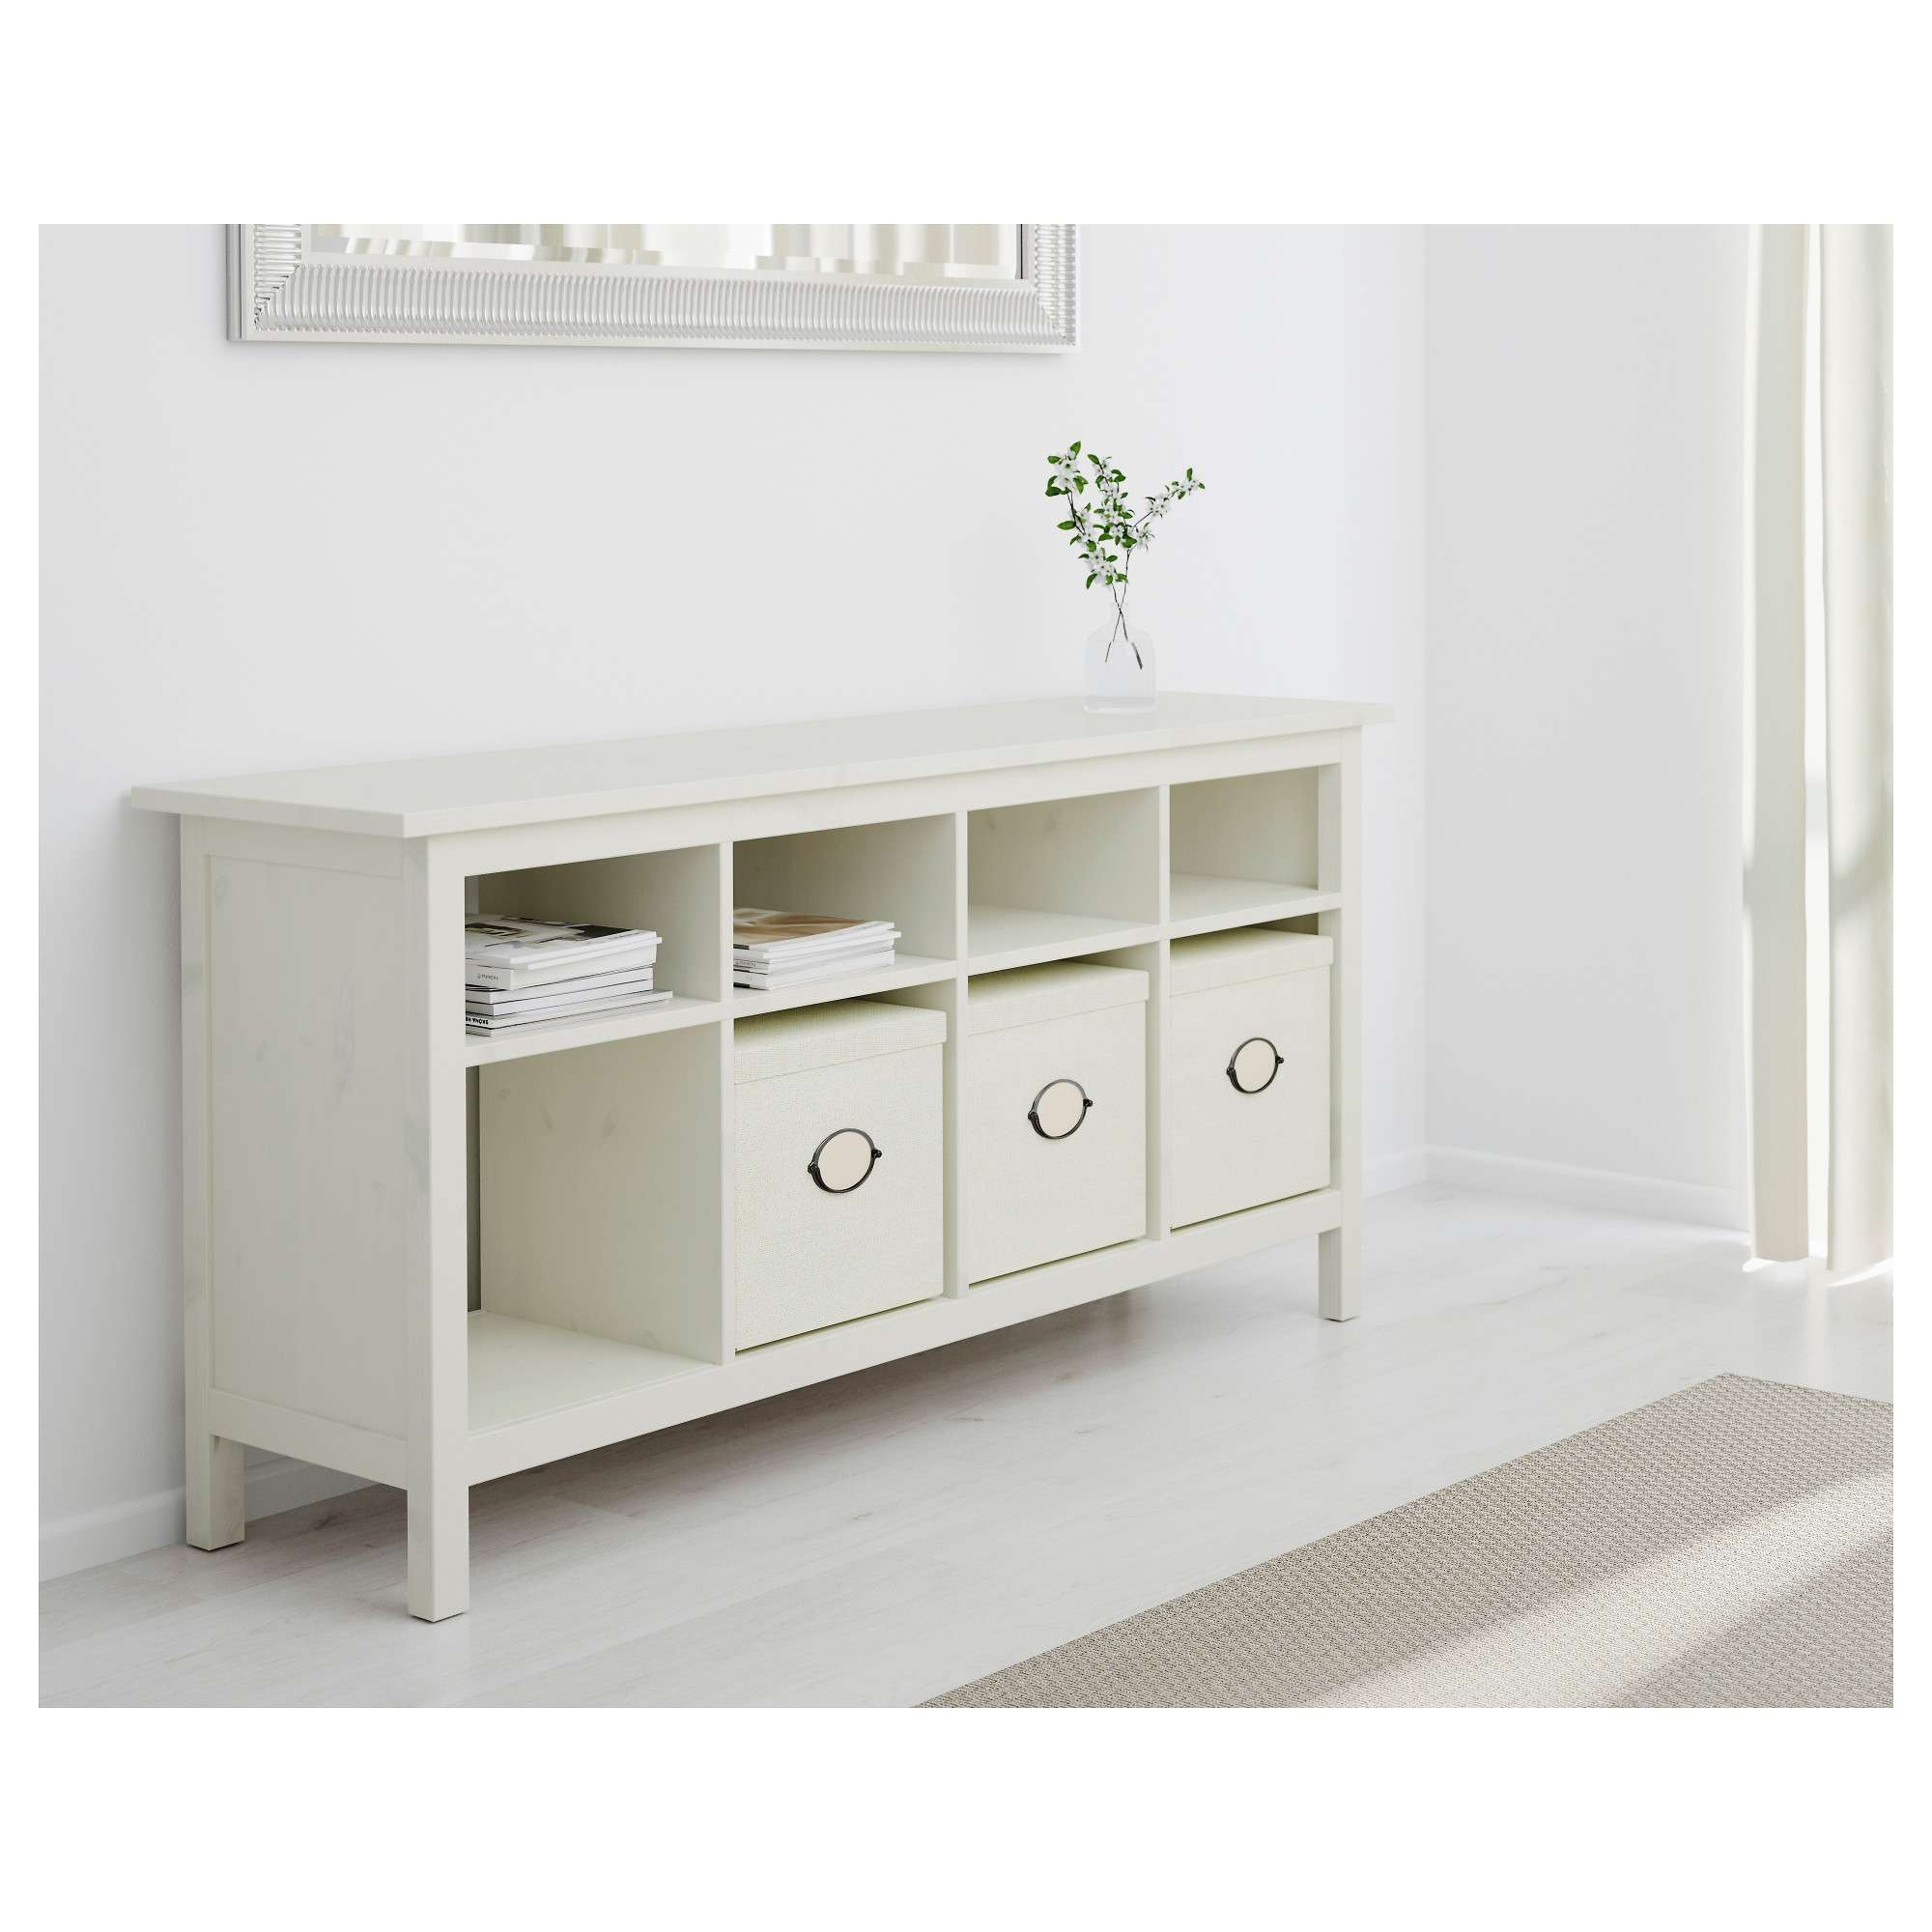 Hemnes Console Table White Stain 157X40 Cm – Ikea For Sideboards Tables (Gallery 10 of 20)